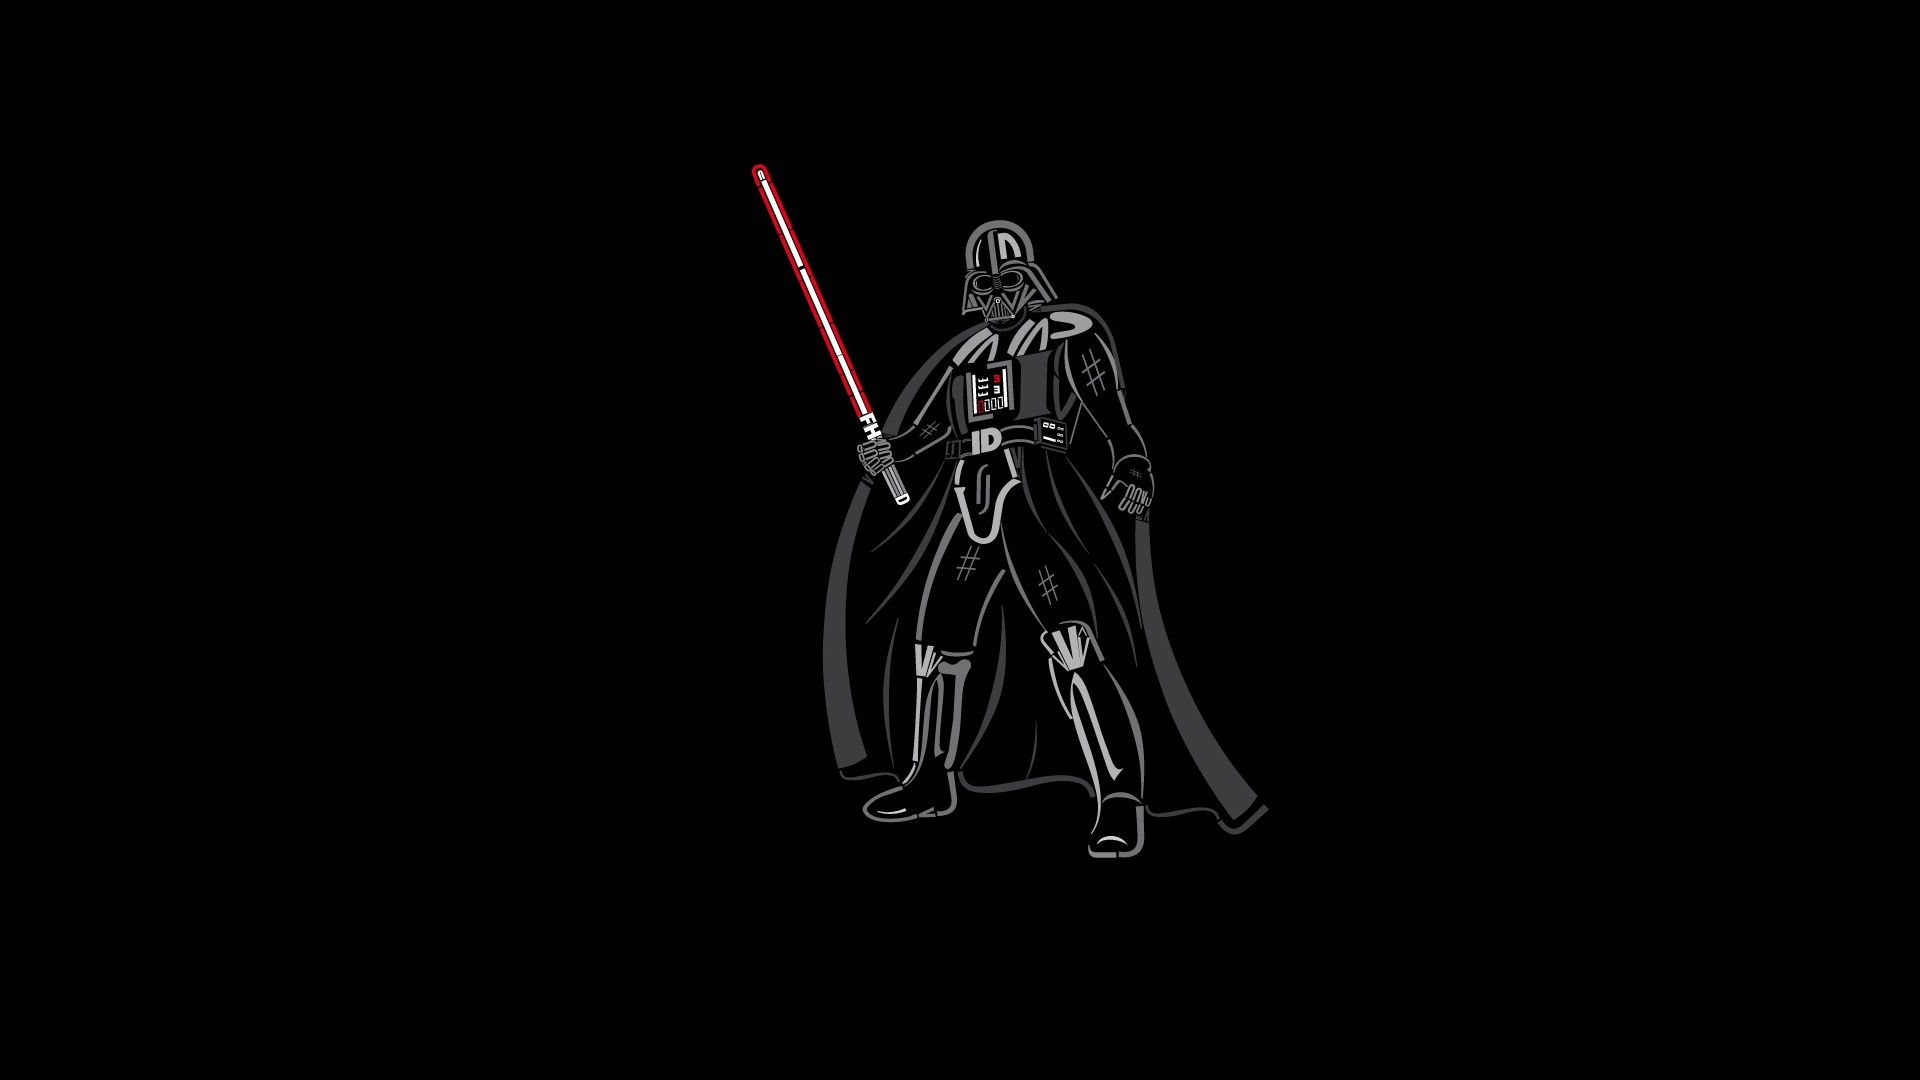 Star Wars Minimalist download free wallpapers for pc in hd